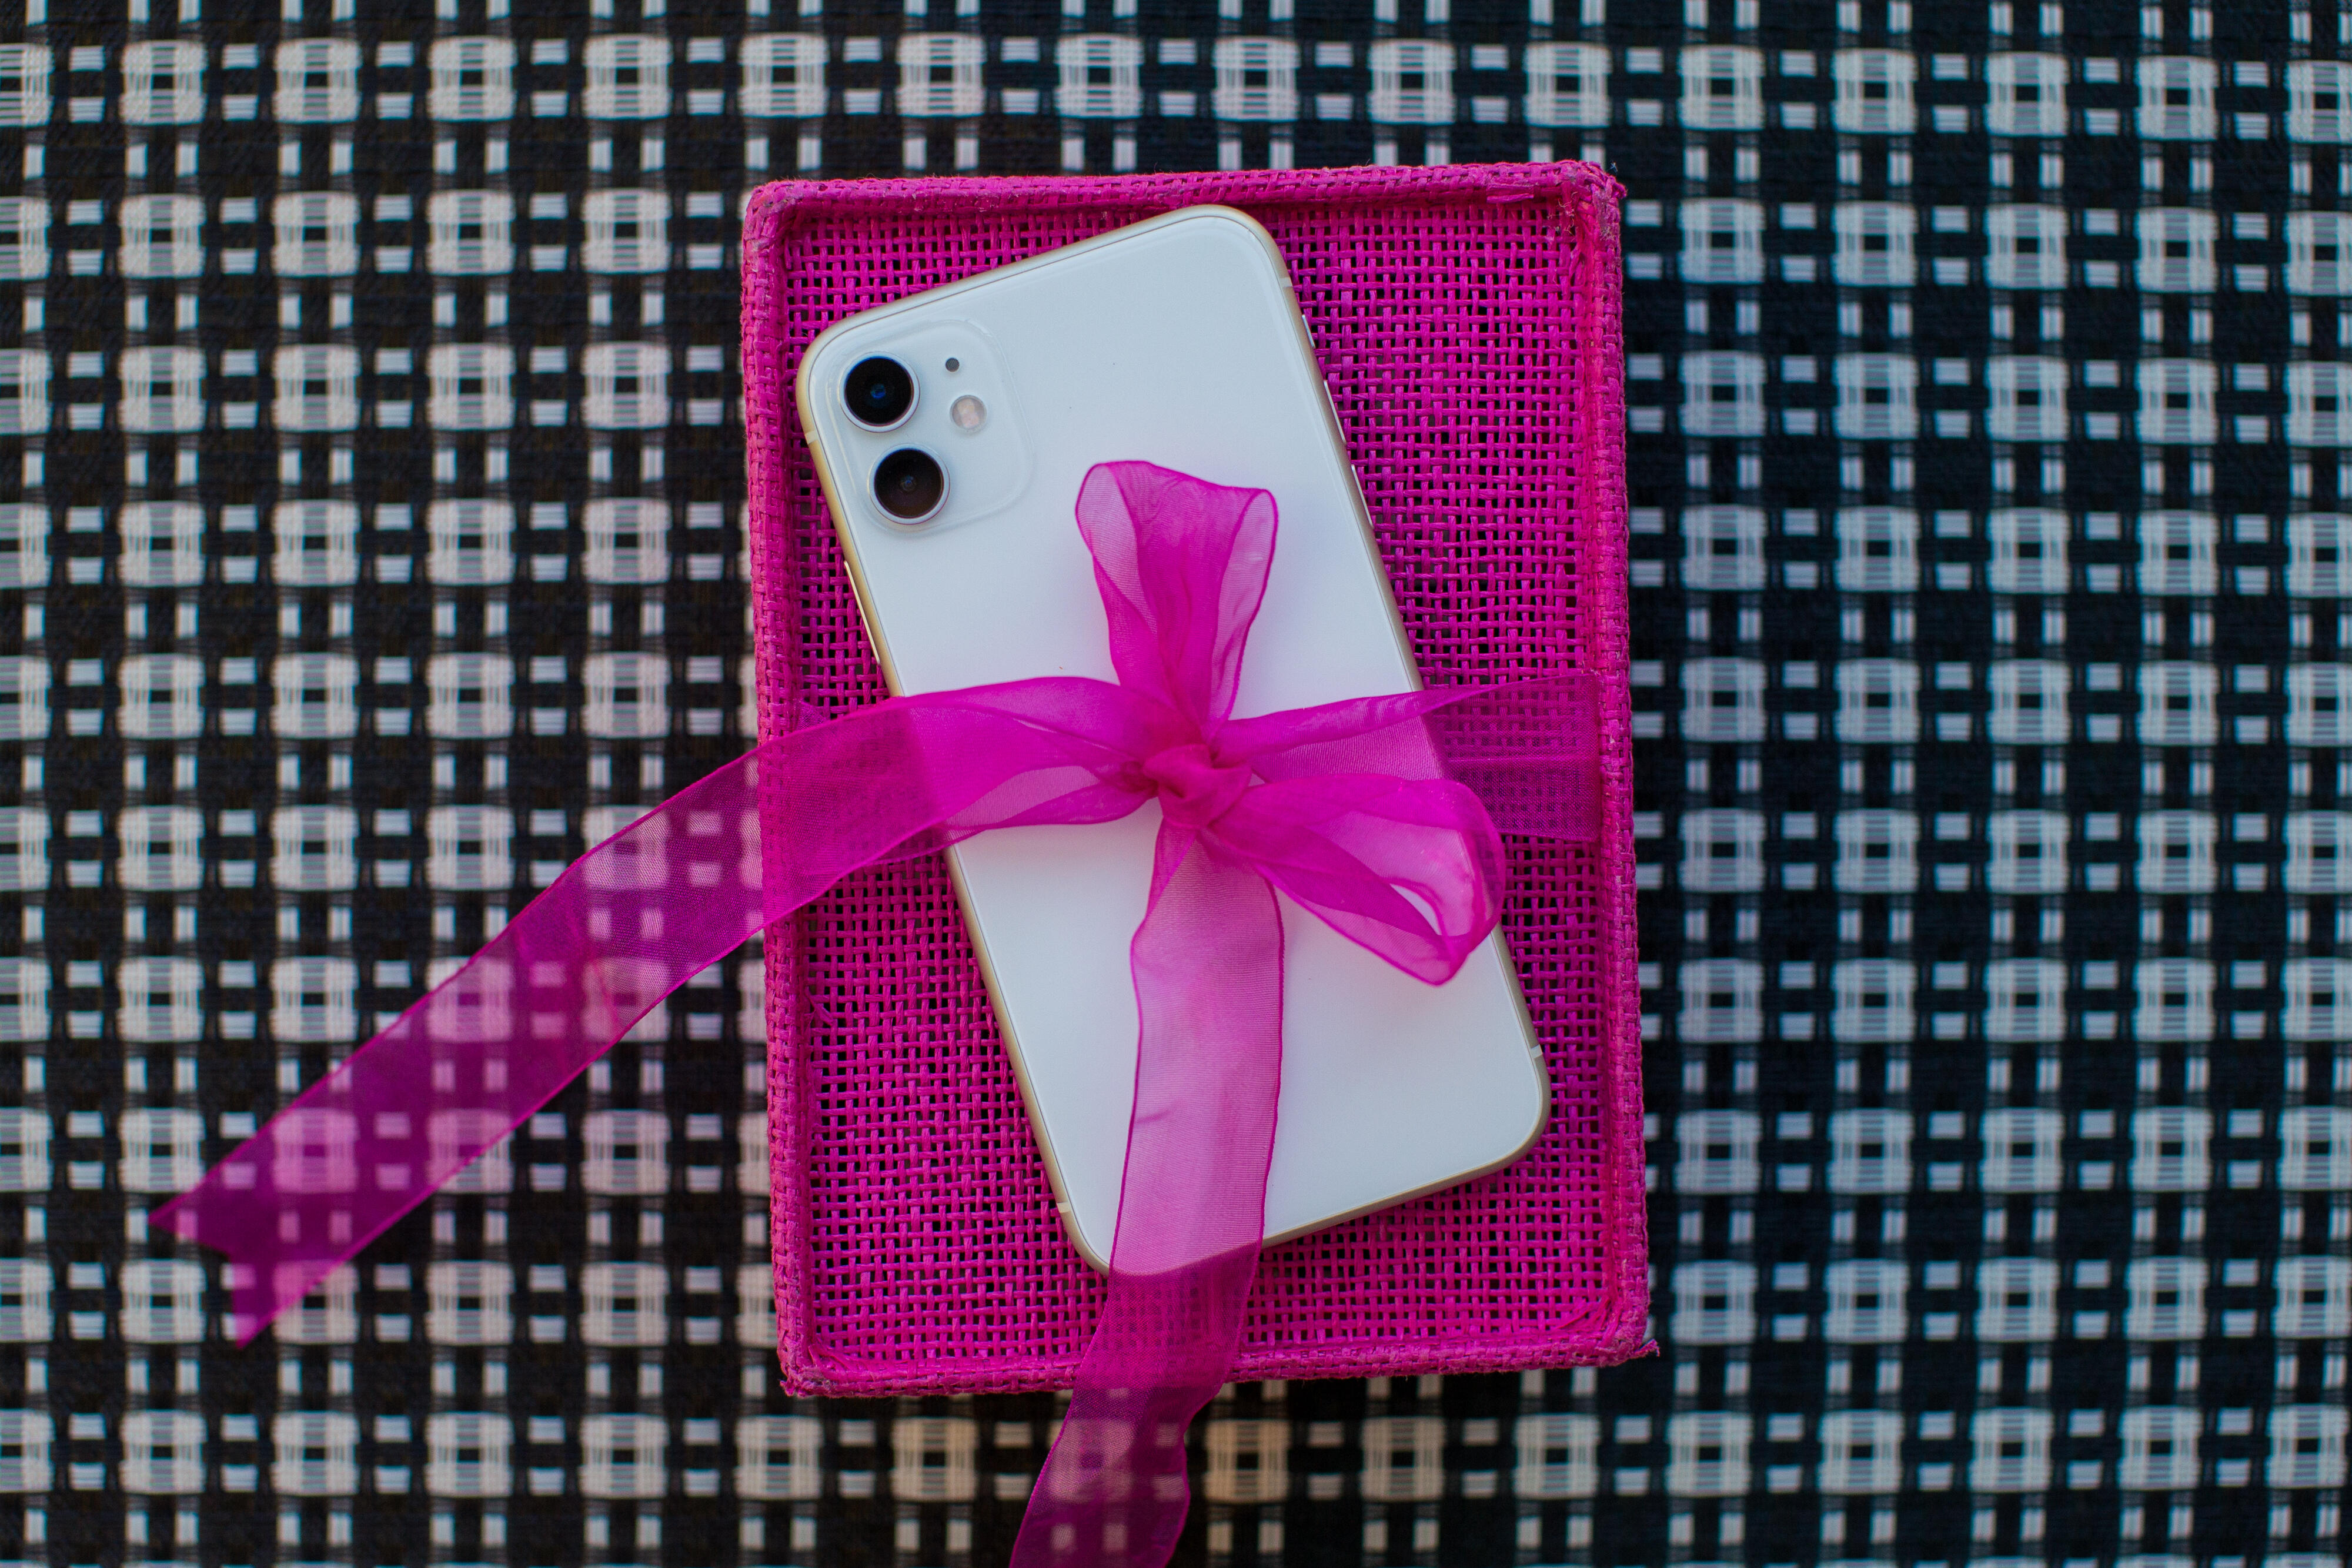 apple-iphone-gift-wrapping-bow-9091